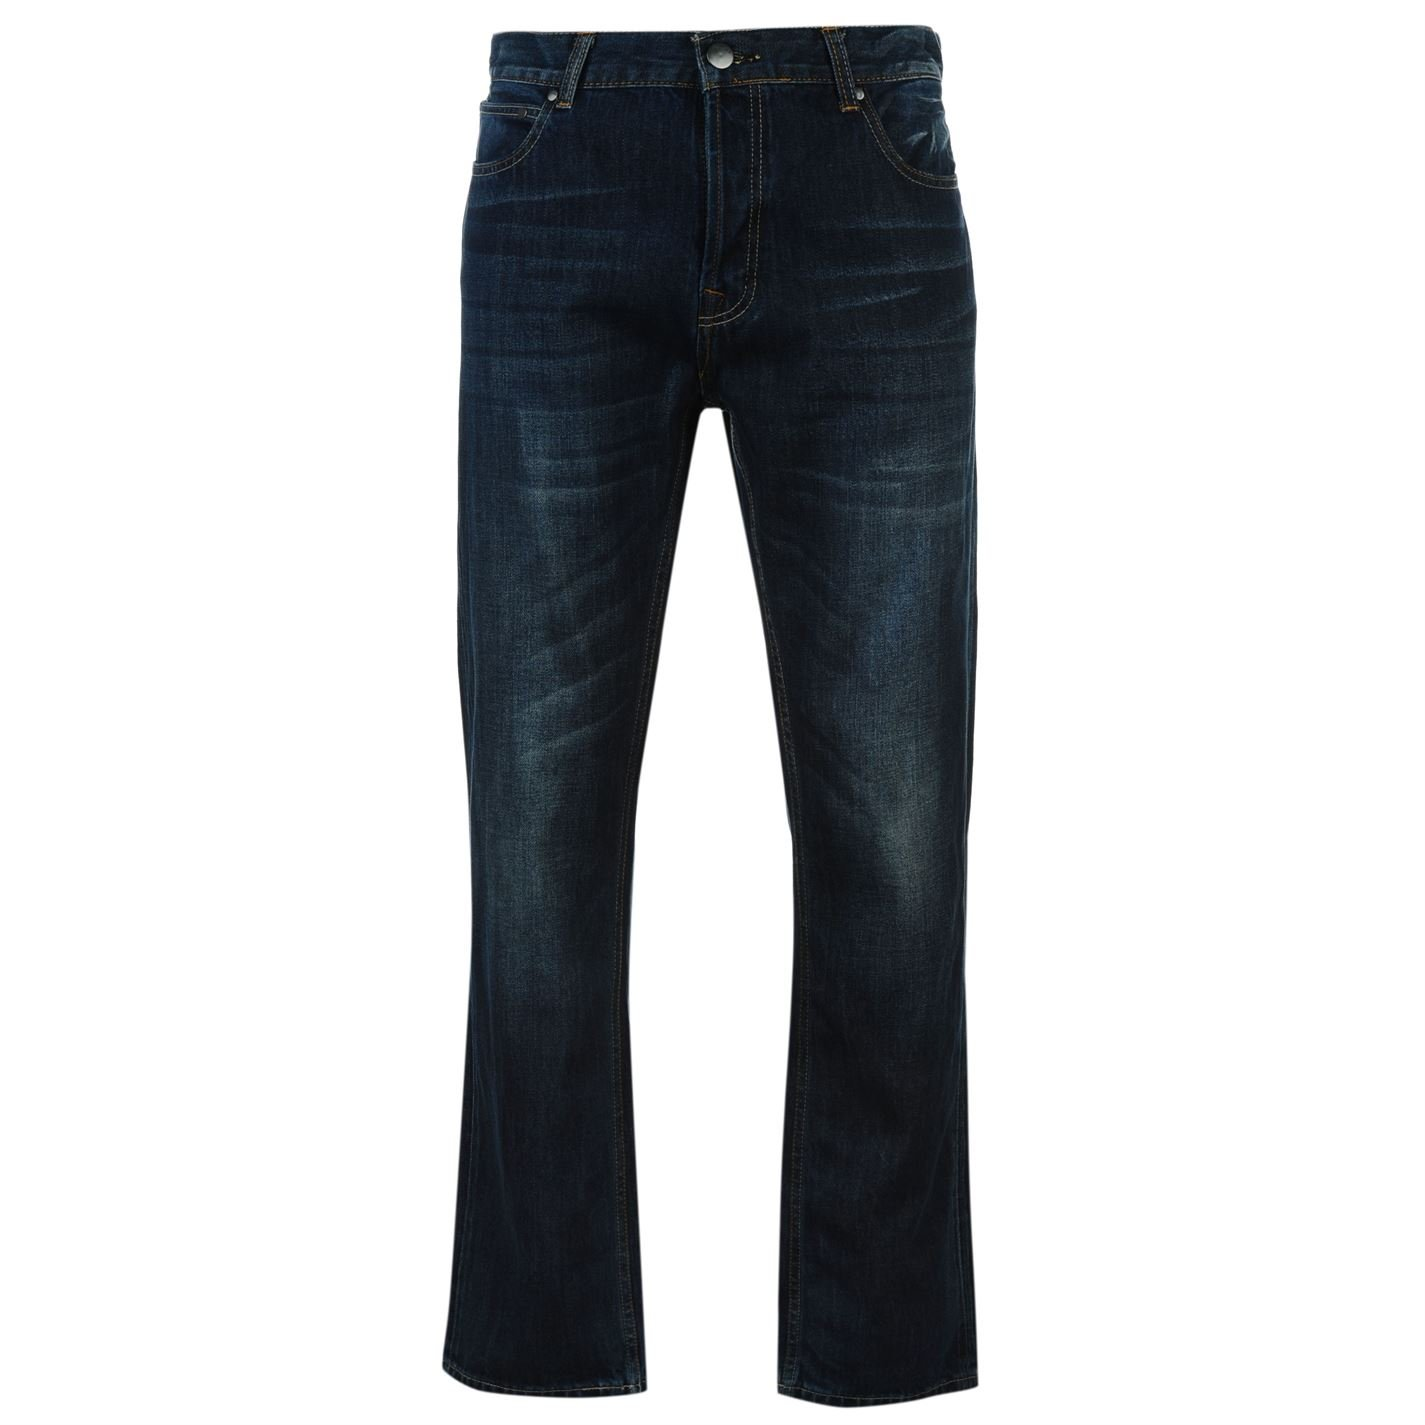 Firetrap Mens Rom Jeans Casual Cotton Trousers Pants Slightly Distressed Look